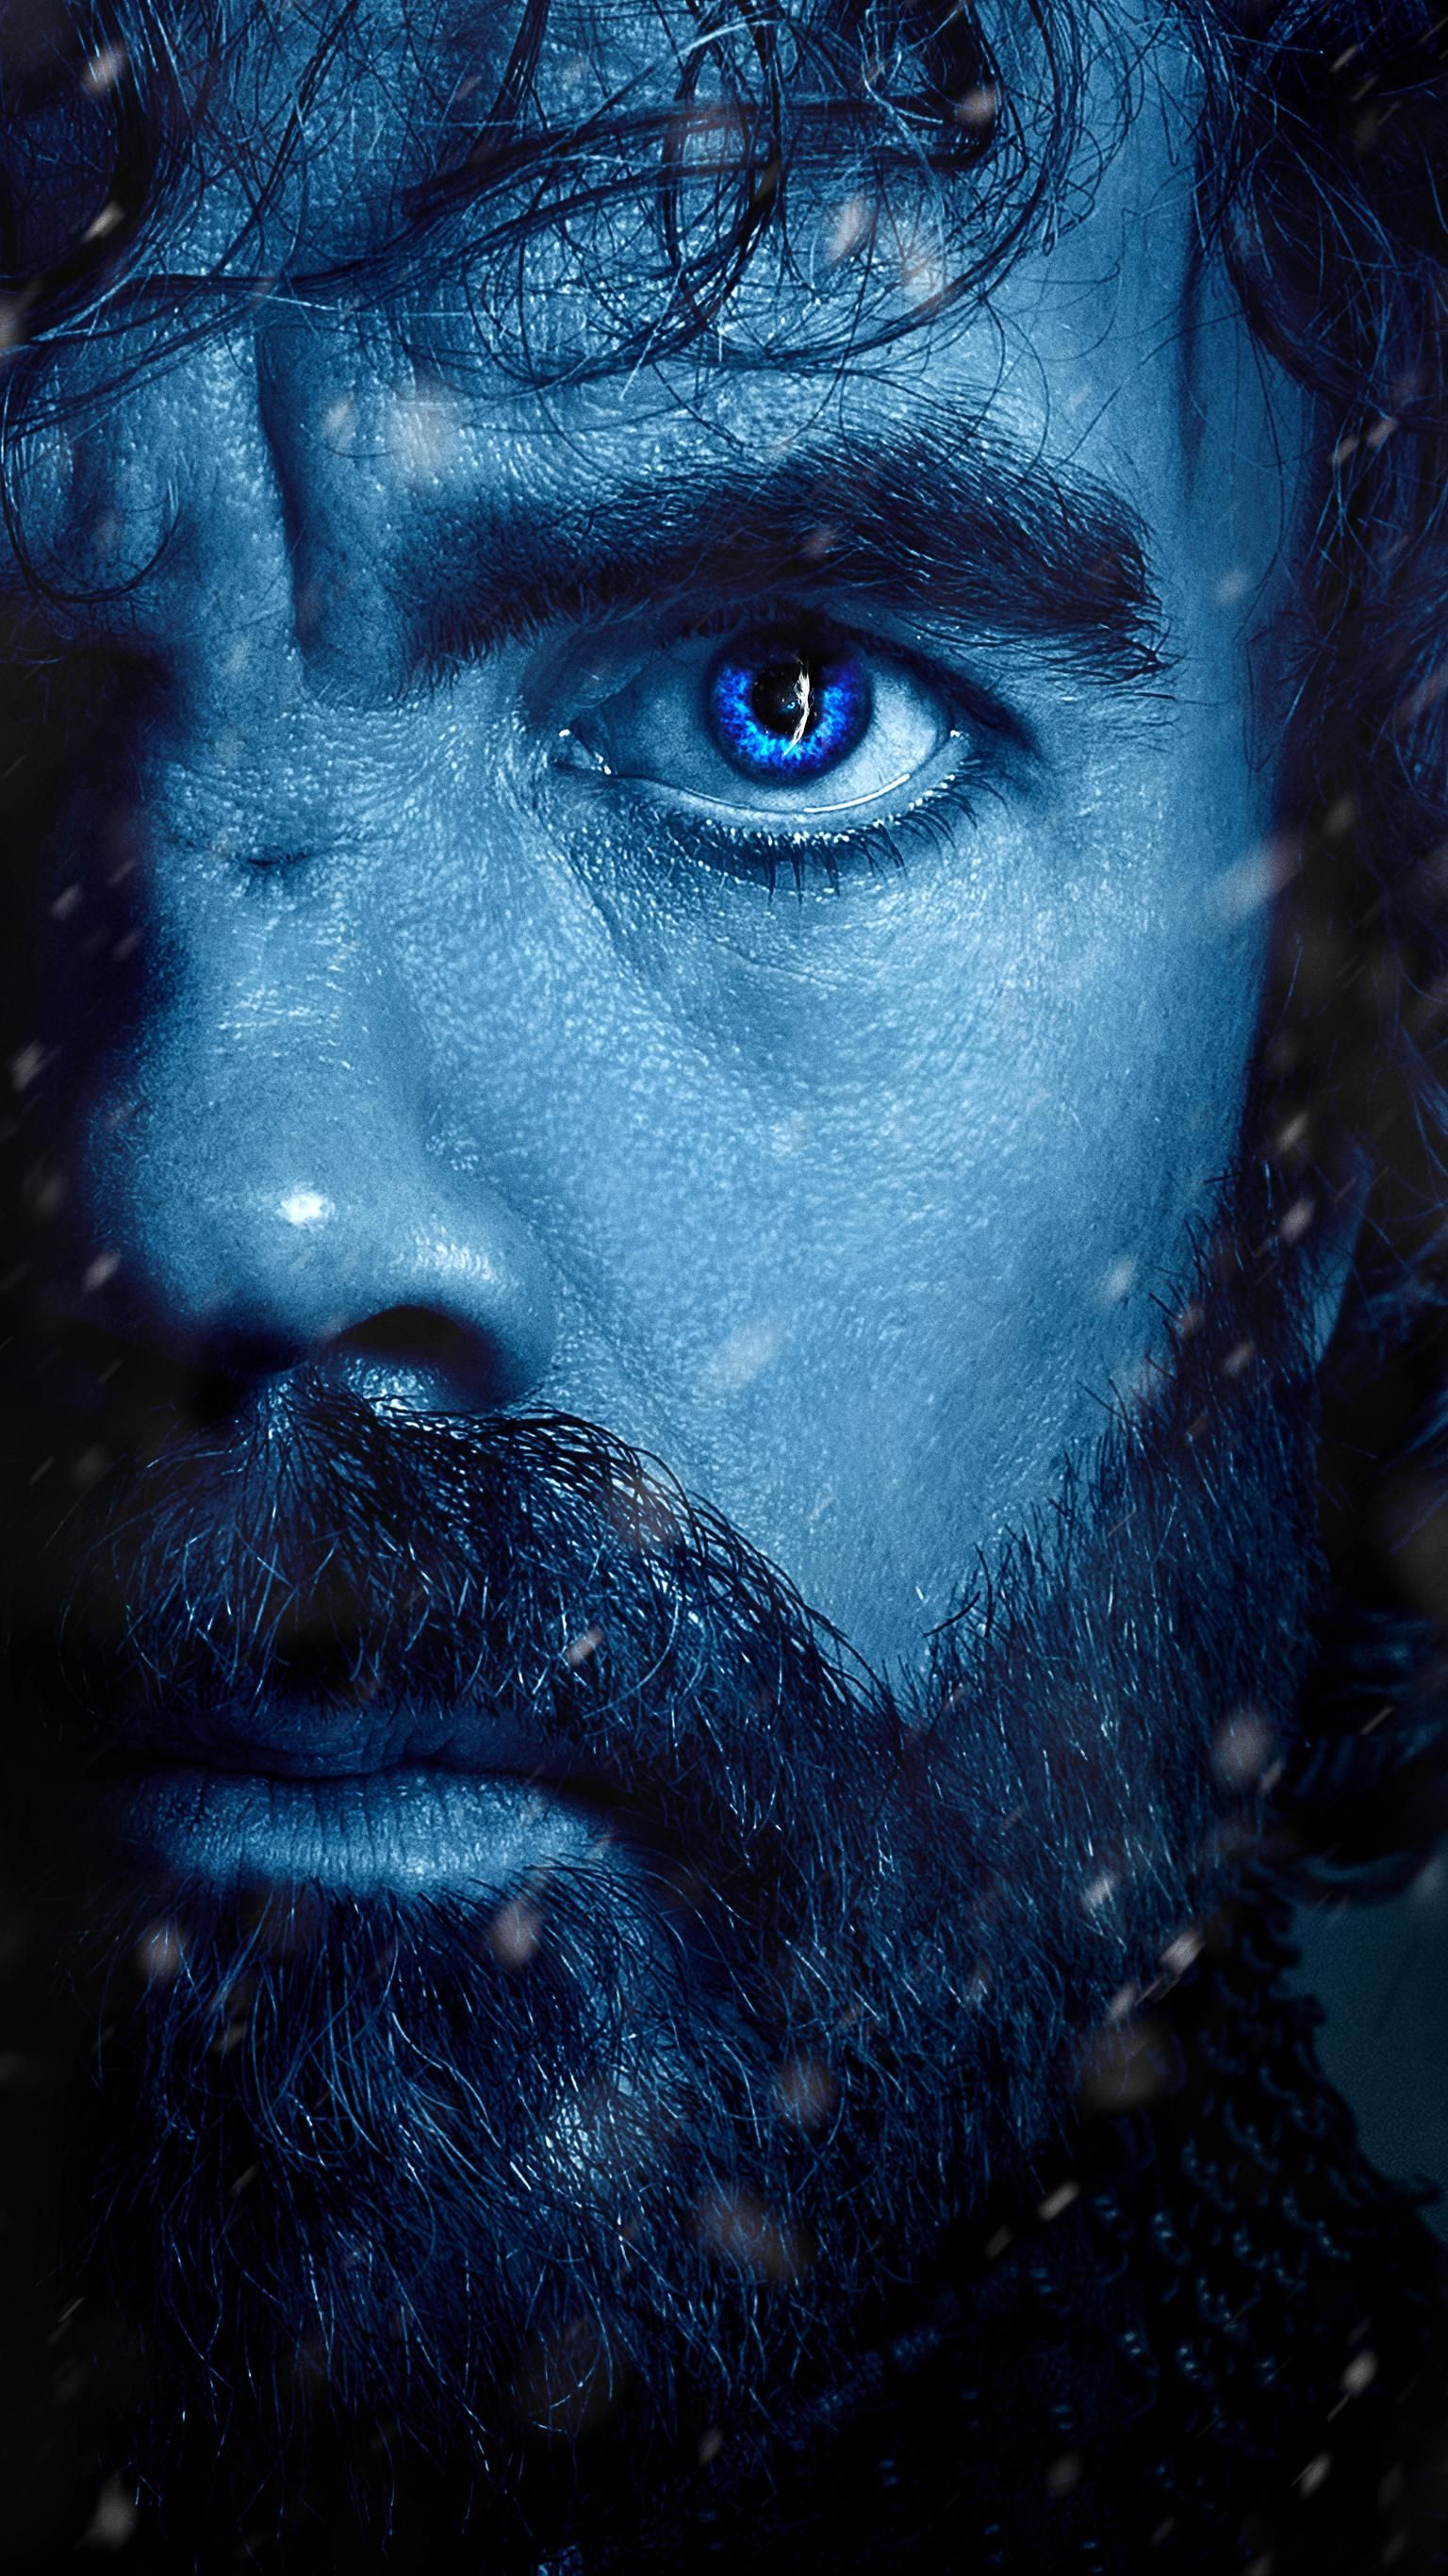 Game Of Thrones Phone Wallpaper Moviemania Game Of Thrones Poster Game Of Thrones Artwork Game Of Thrones Tyrion